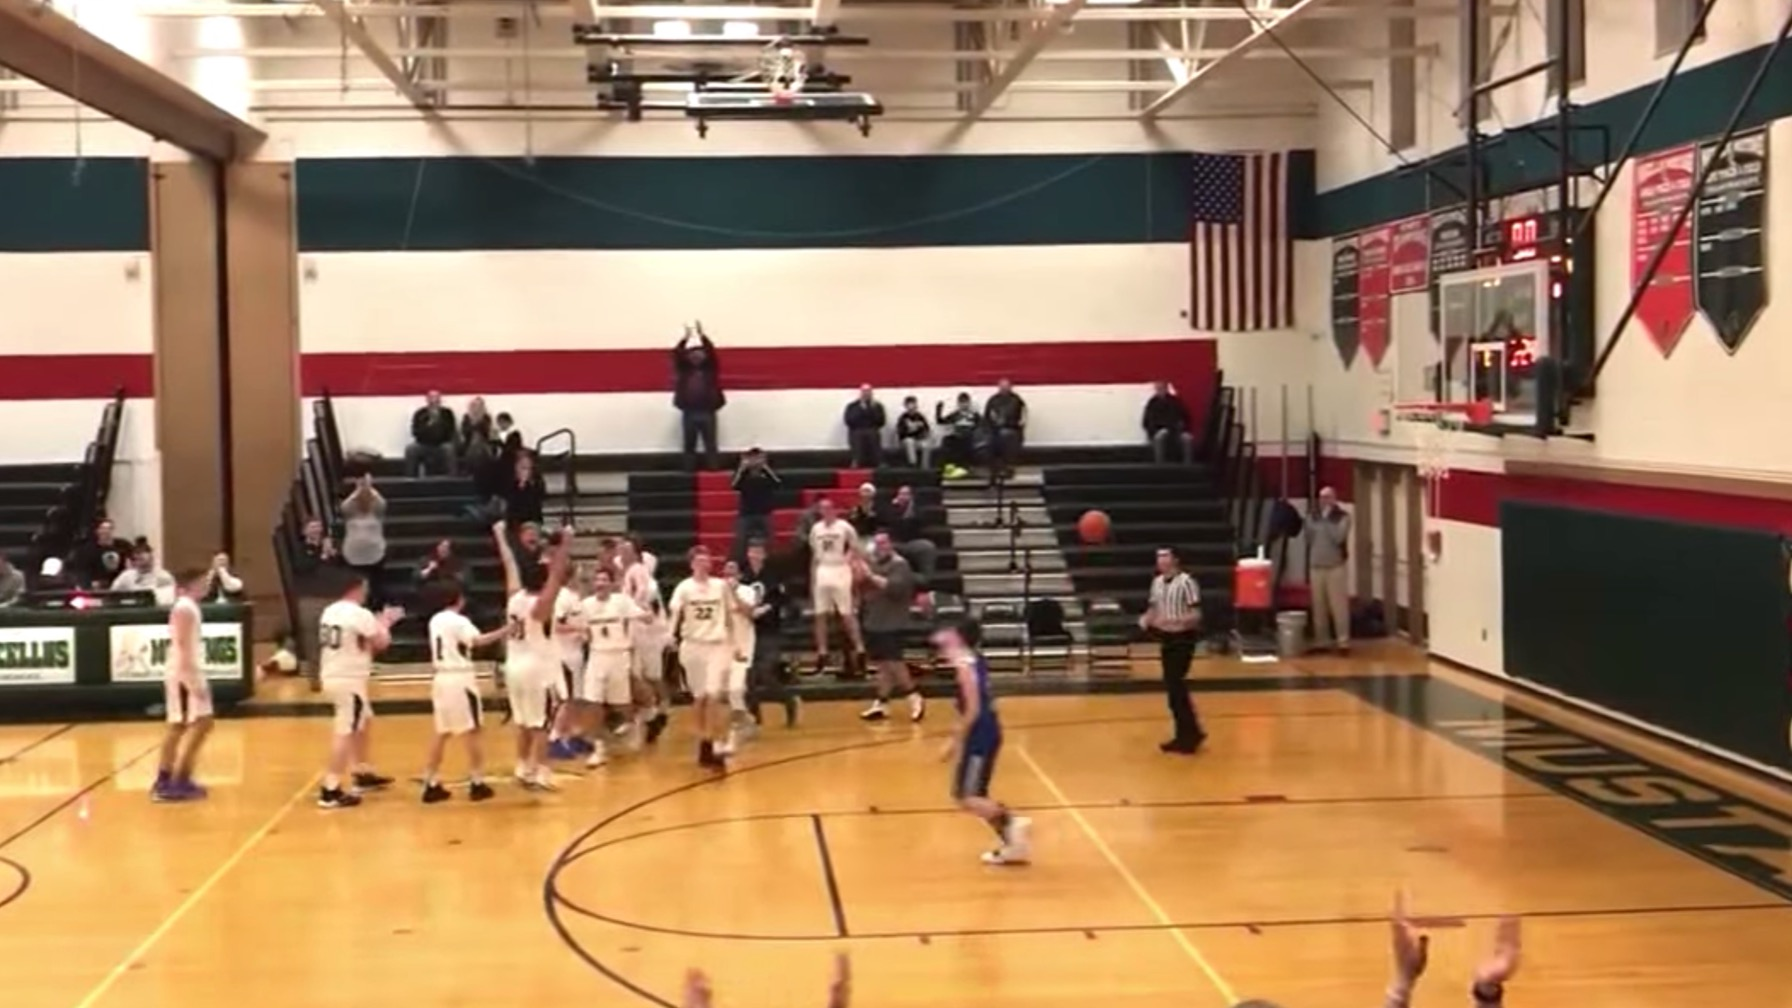 Pure Sportsmanship on Display at a High School Basketball Game [WATCH]